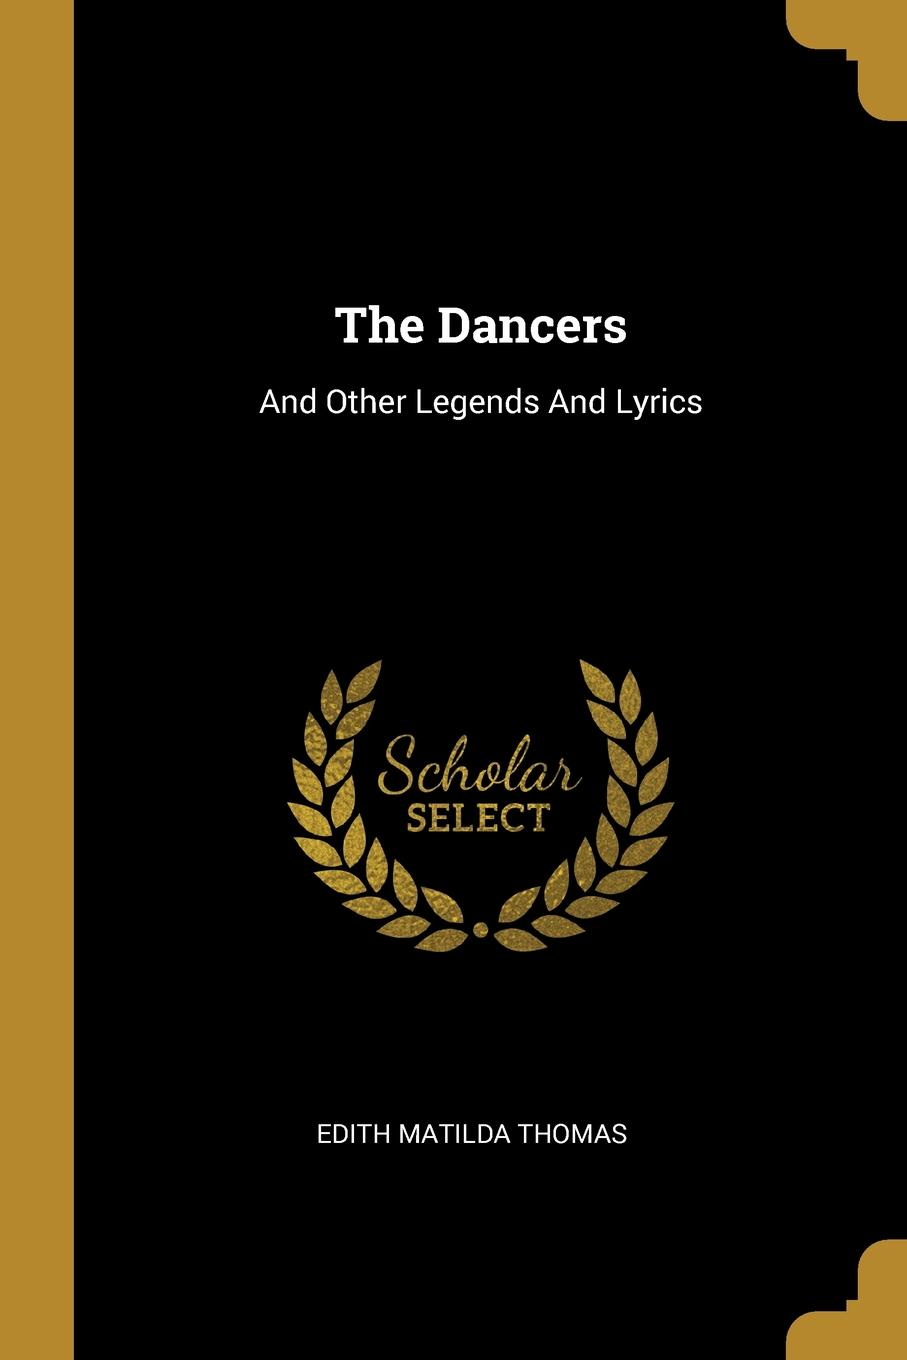 Edith Matilda Thomas. The Dancers. And Other Legends And Lyrics